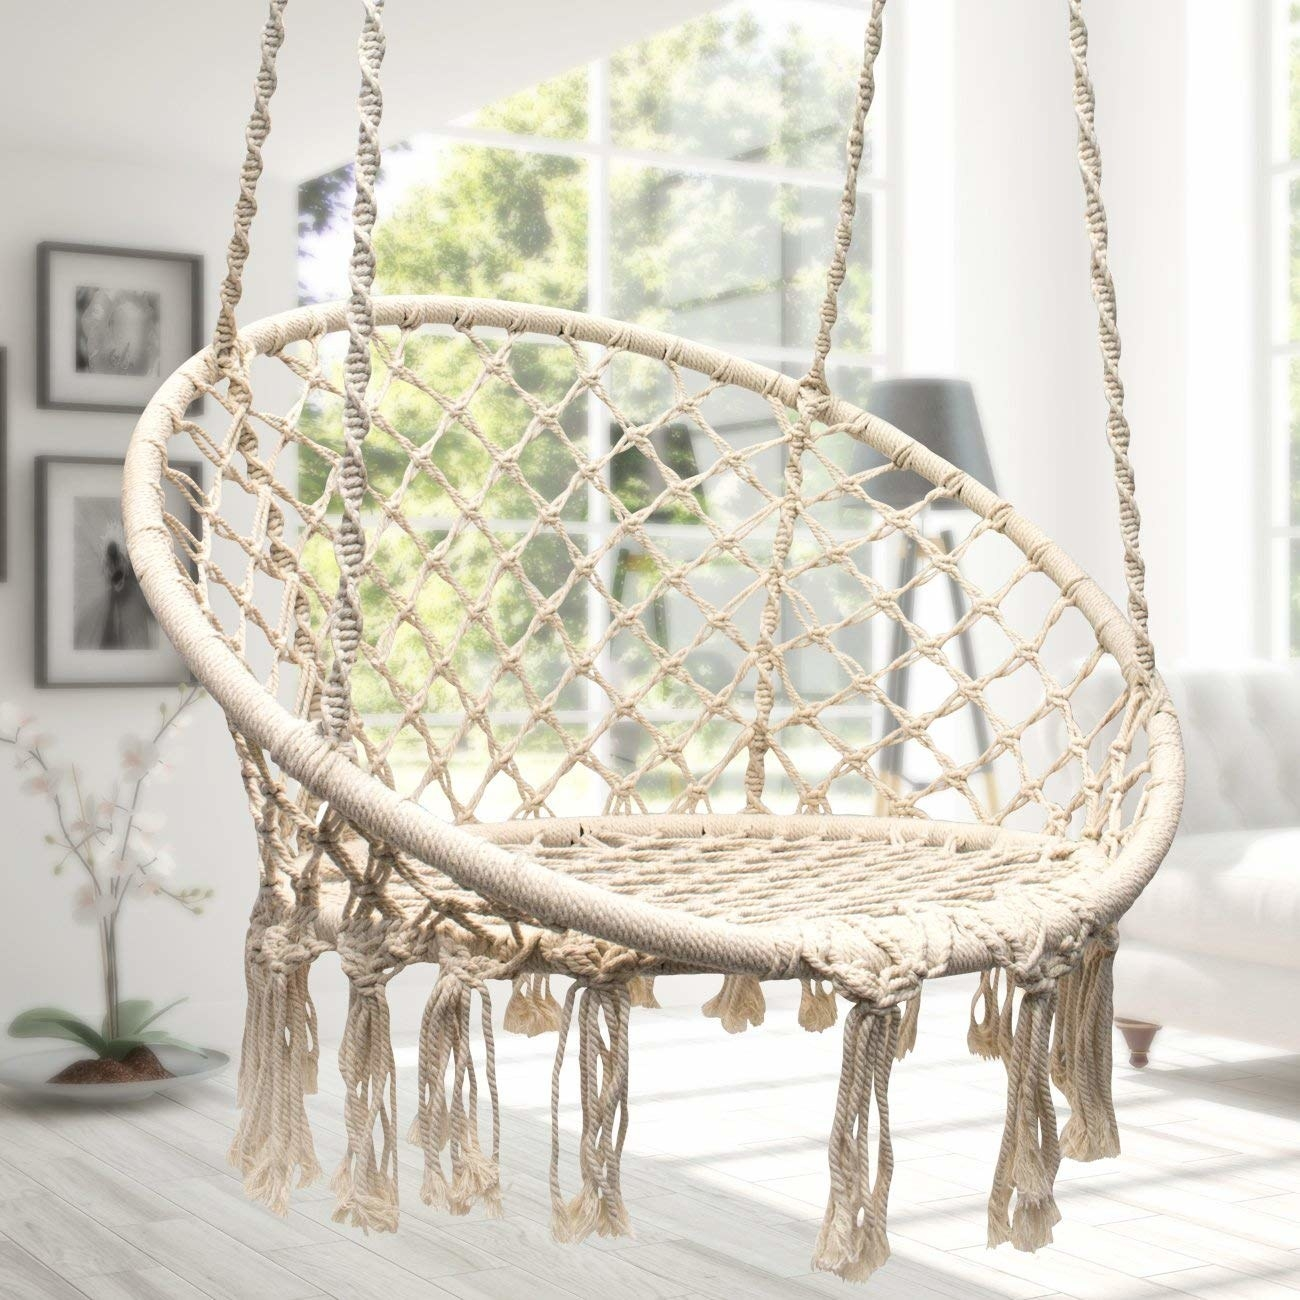 Swing chair hanging in room